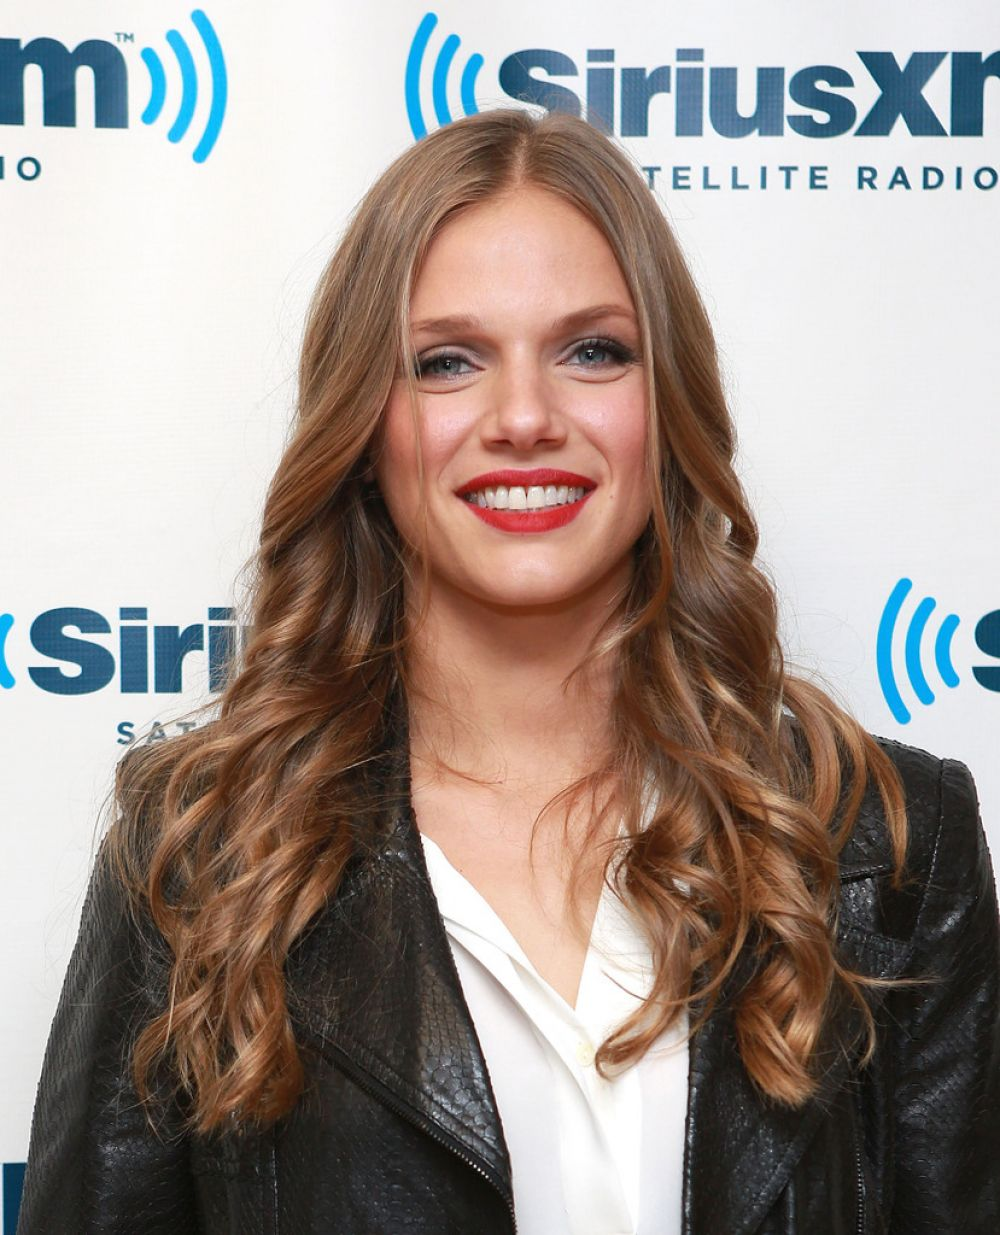 Tracy Spiridakos At SiriusXM Studios In NYC